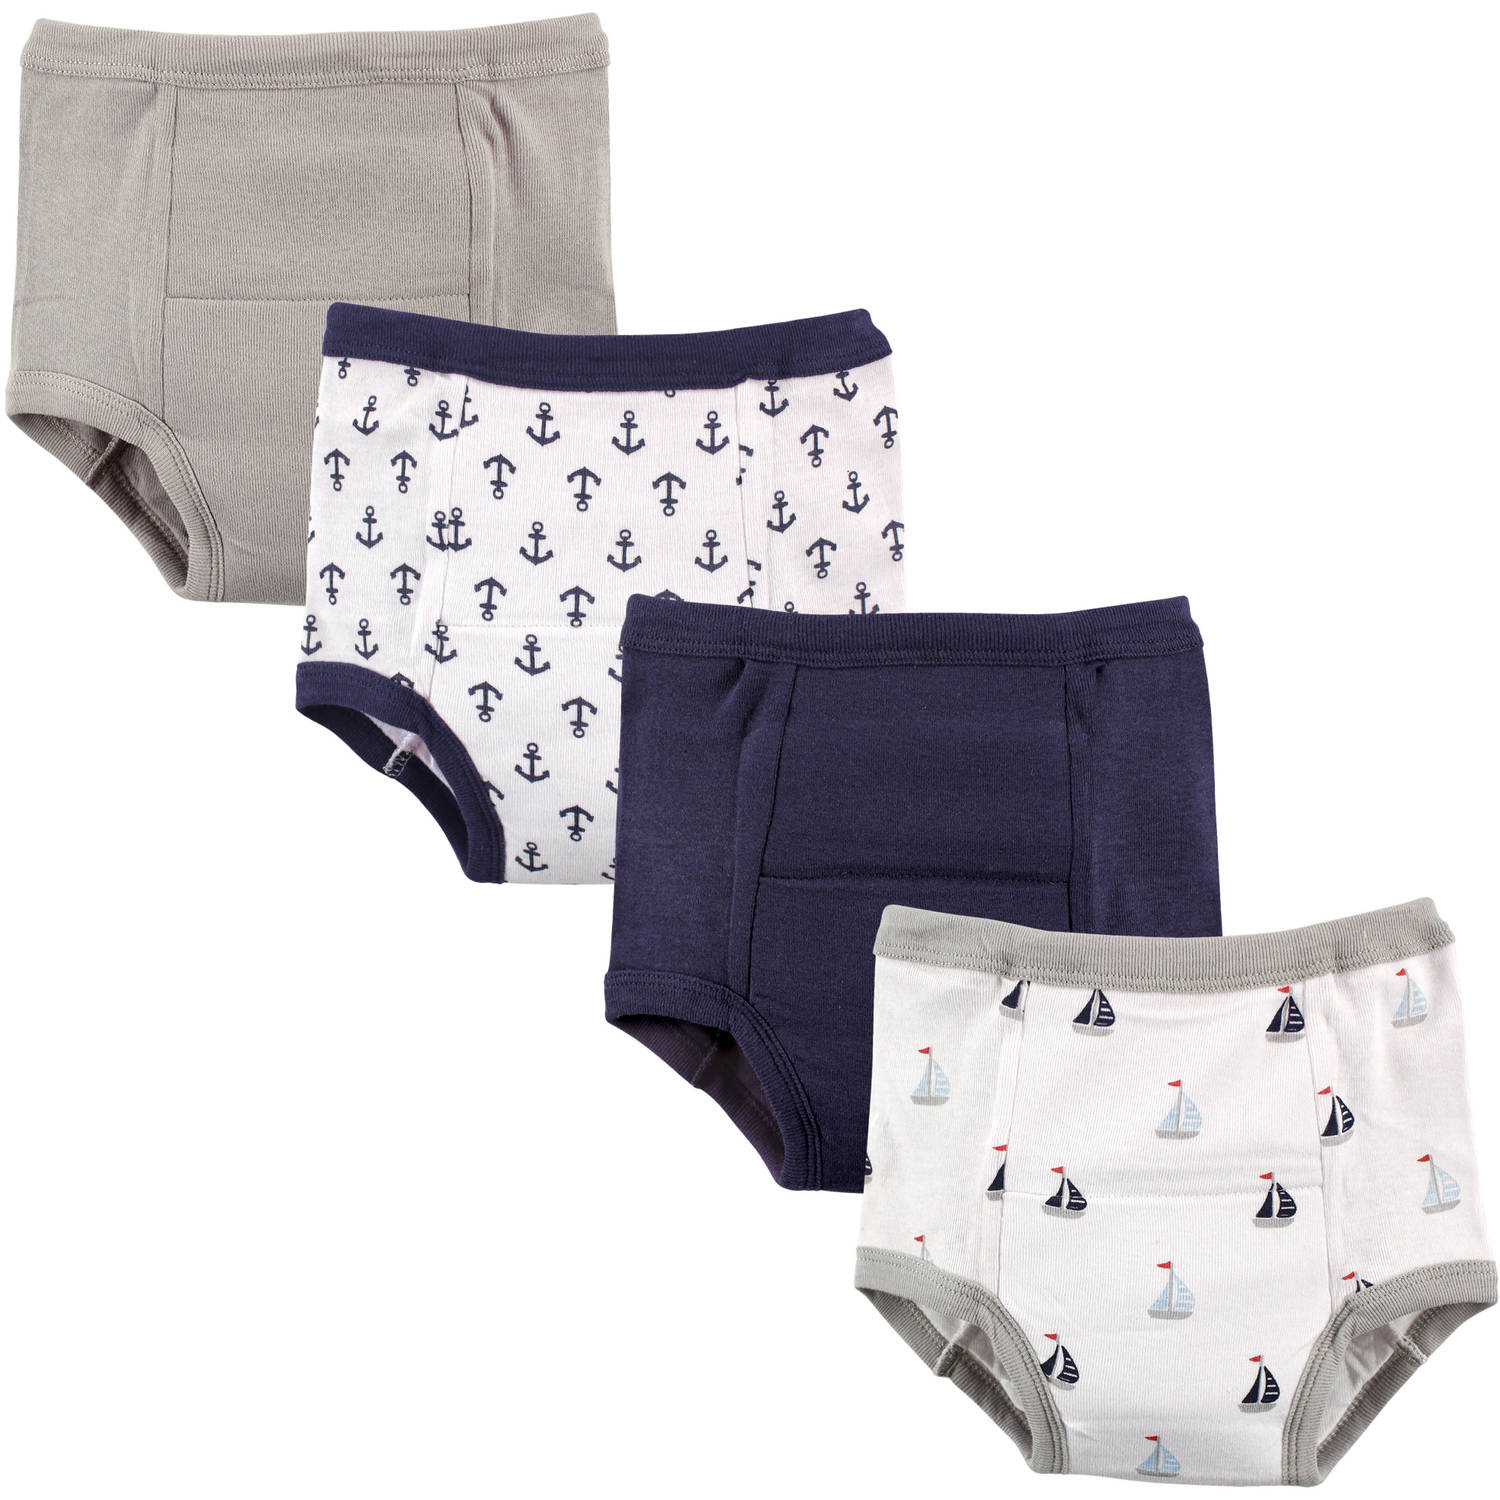 Luvable Friends Baby Boy and Girl Training Pants, 4-Pack - 12-18M - Anchors